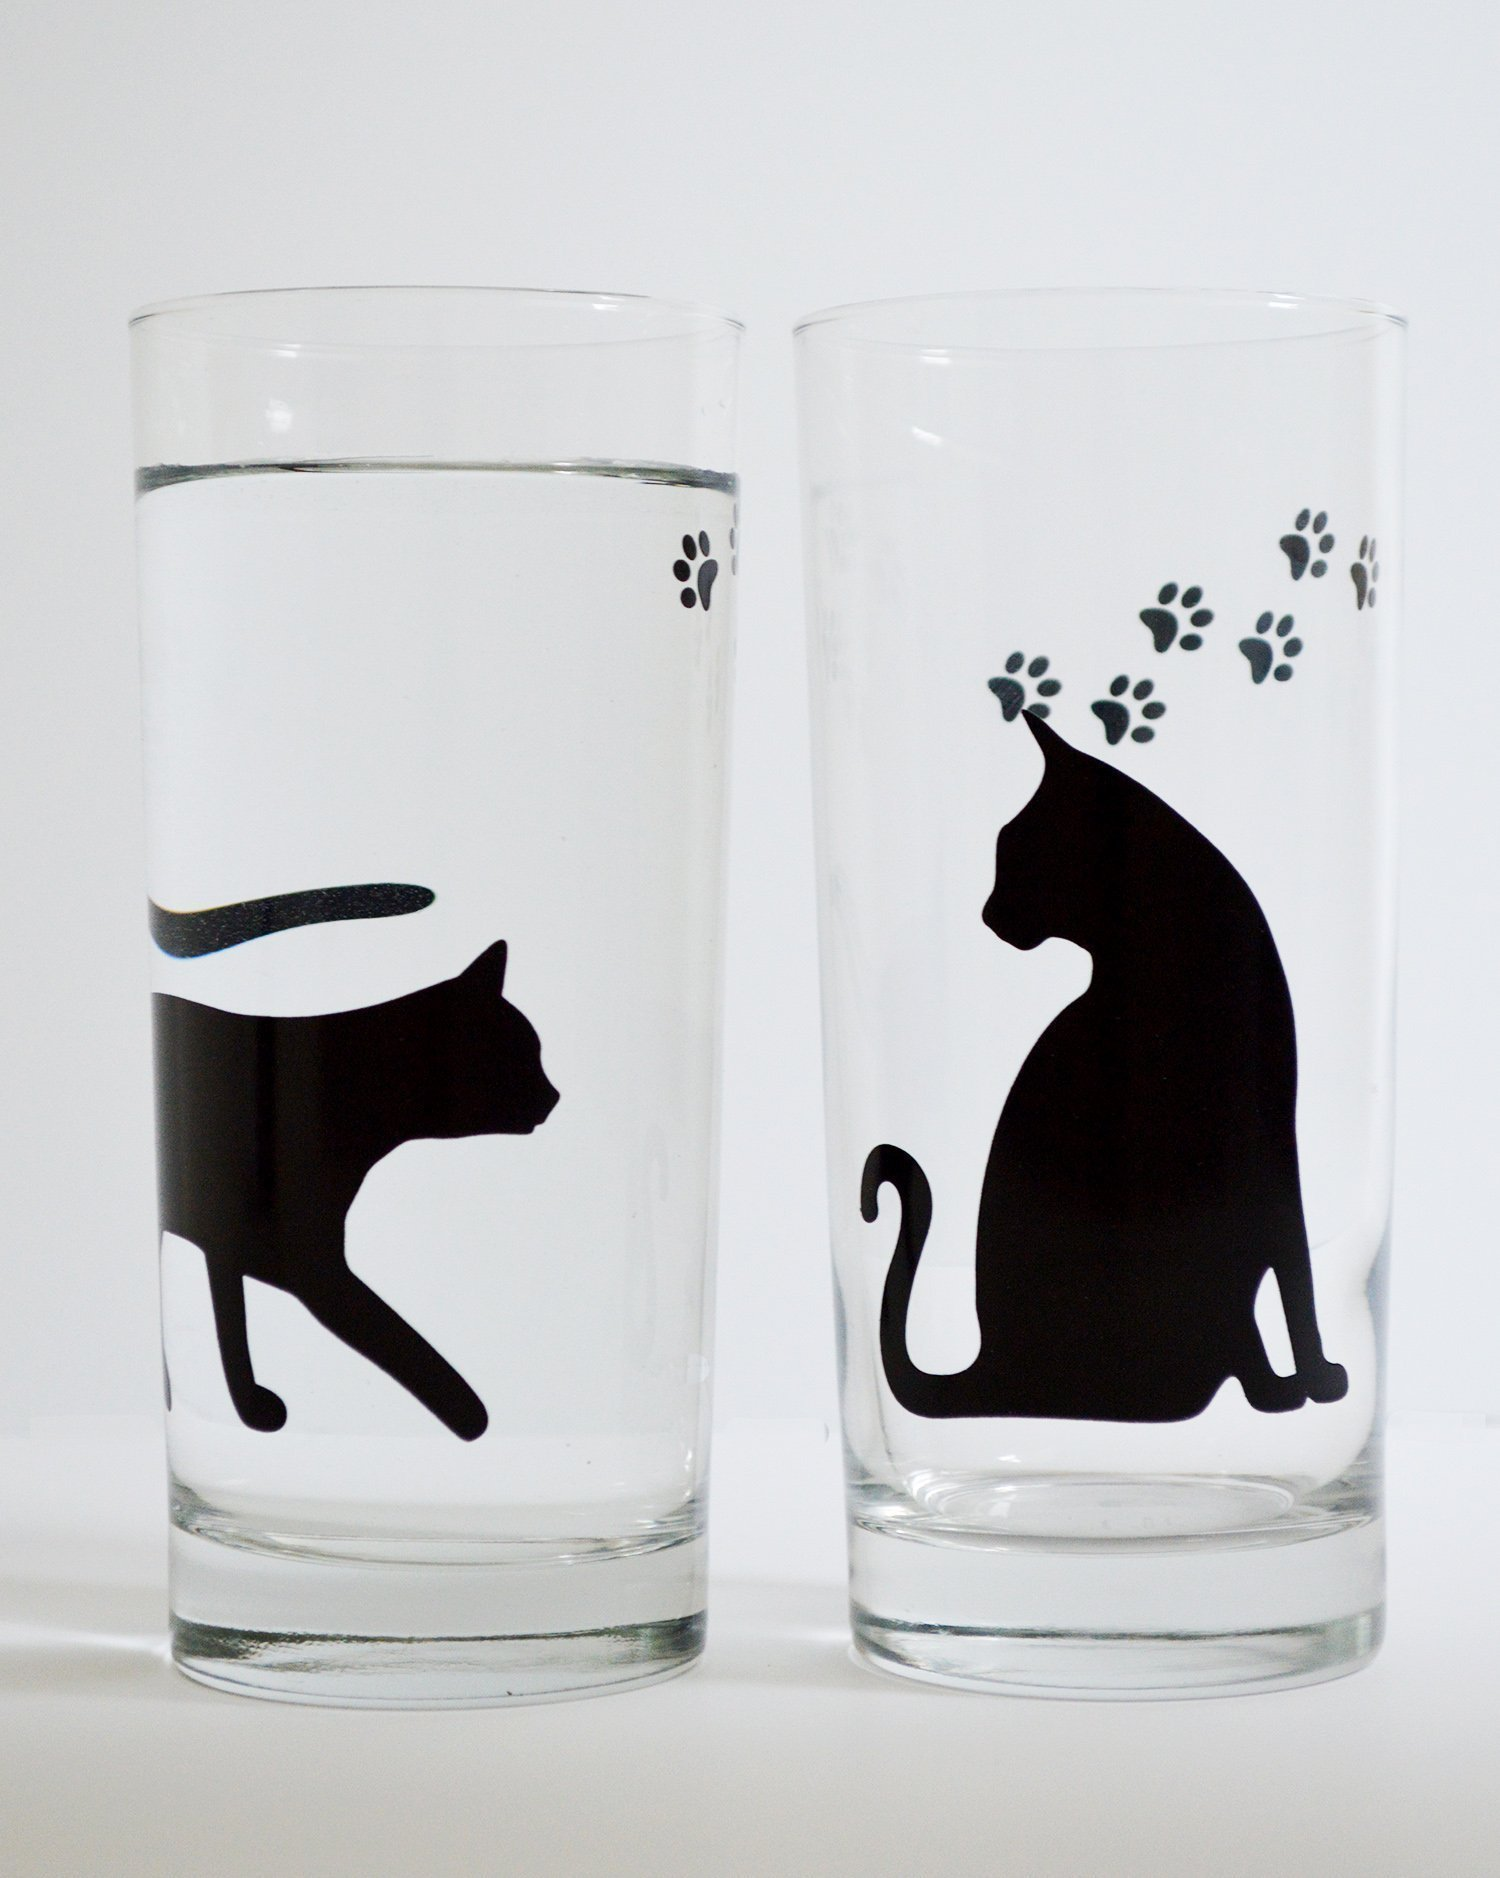 Cat and Paws Everyday Drinking Glasses Set of Two 16 oz Glasses, Cat Lover Gifts, Cat Glasses, Cats by Mary Elizabeth Arts